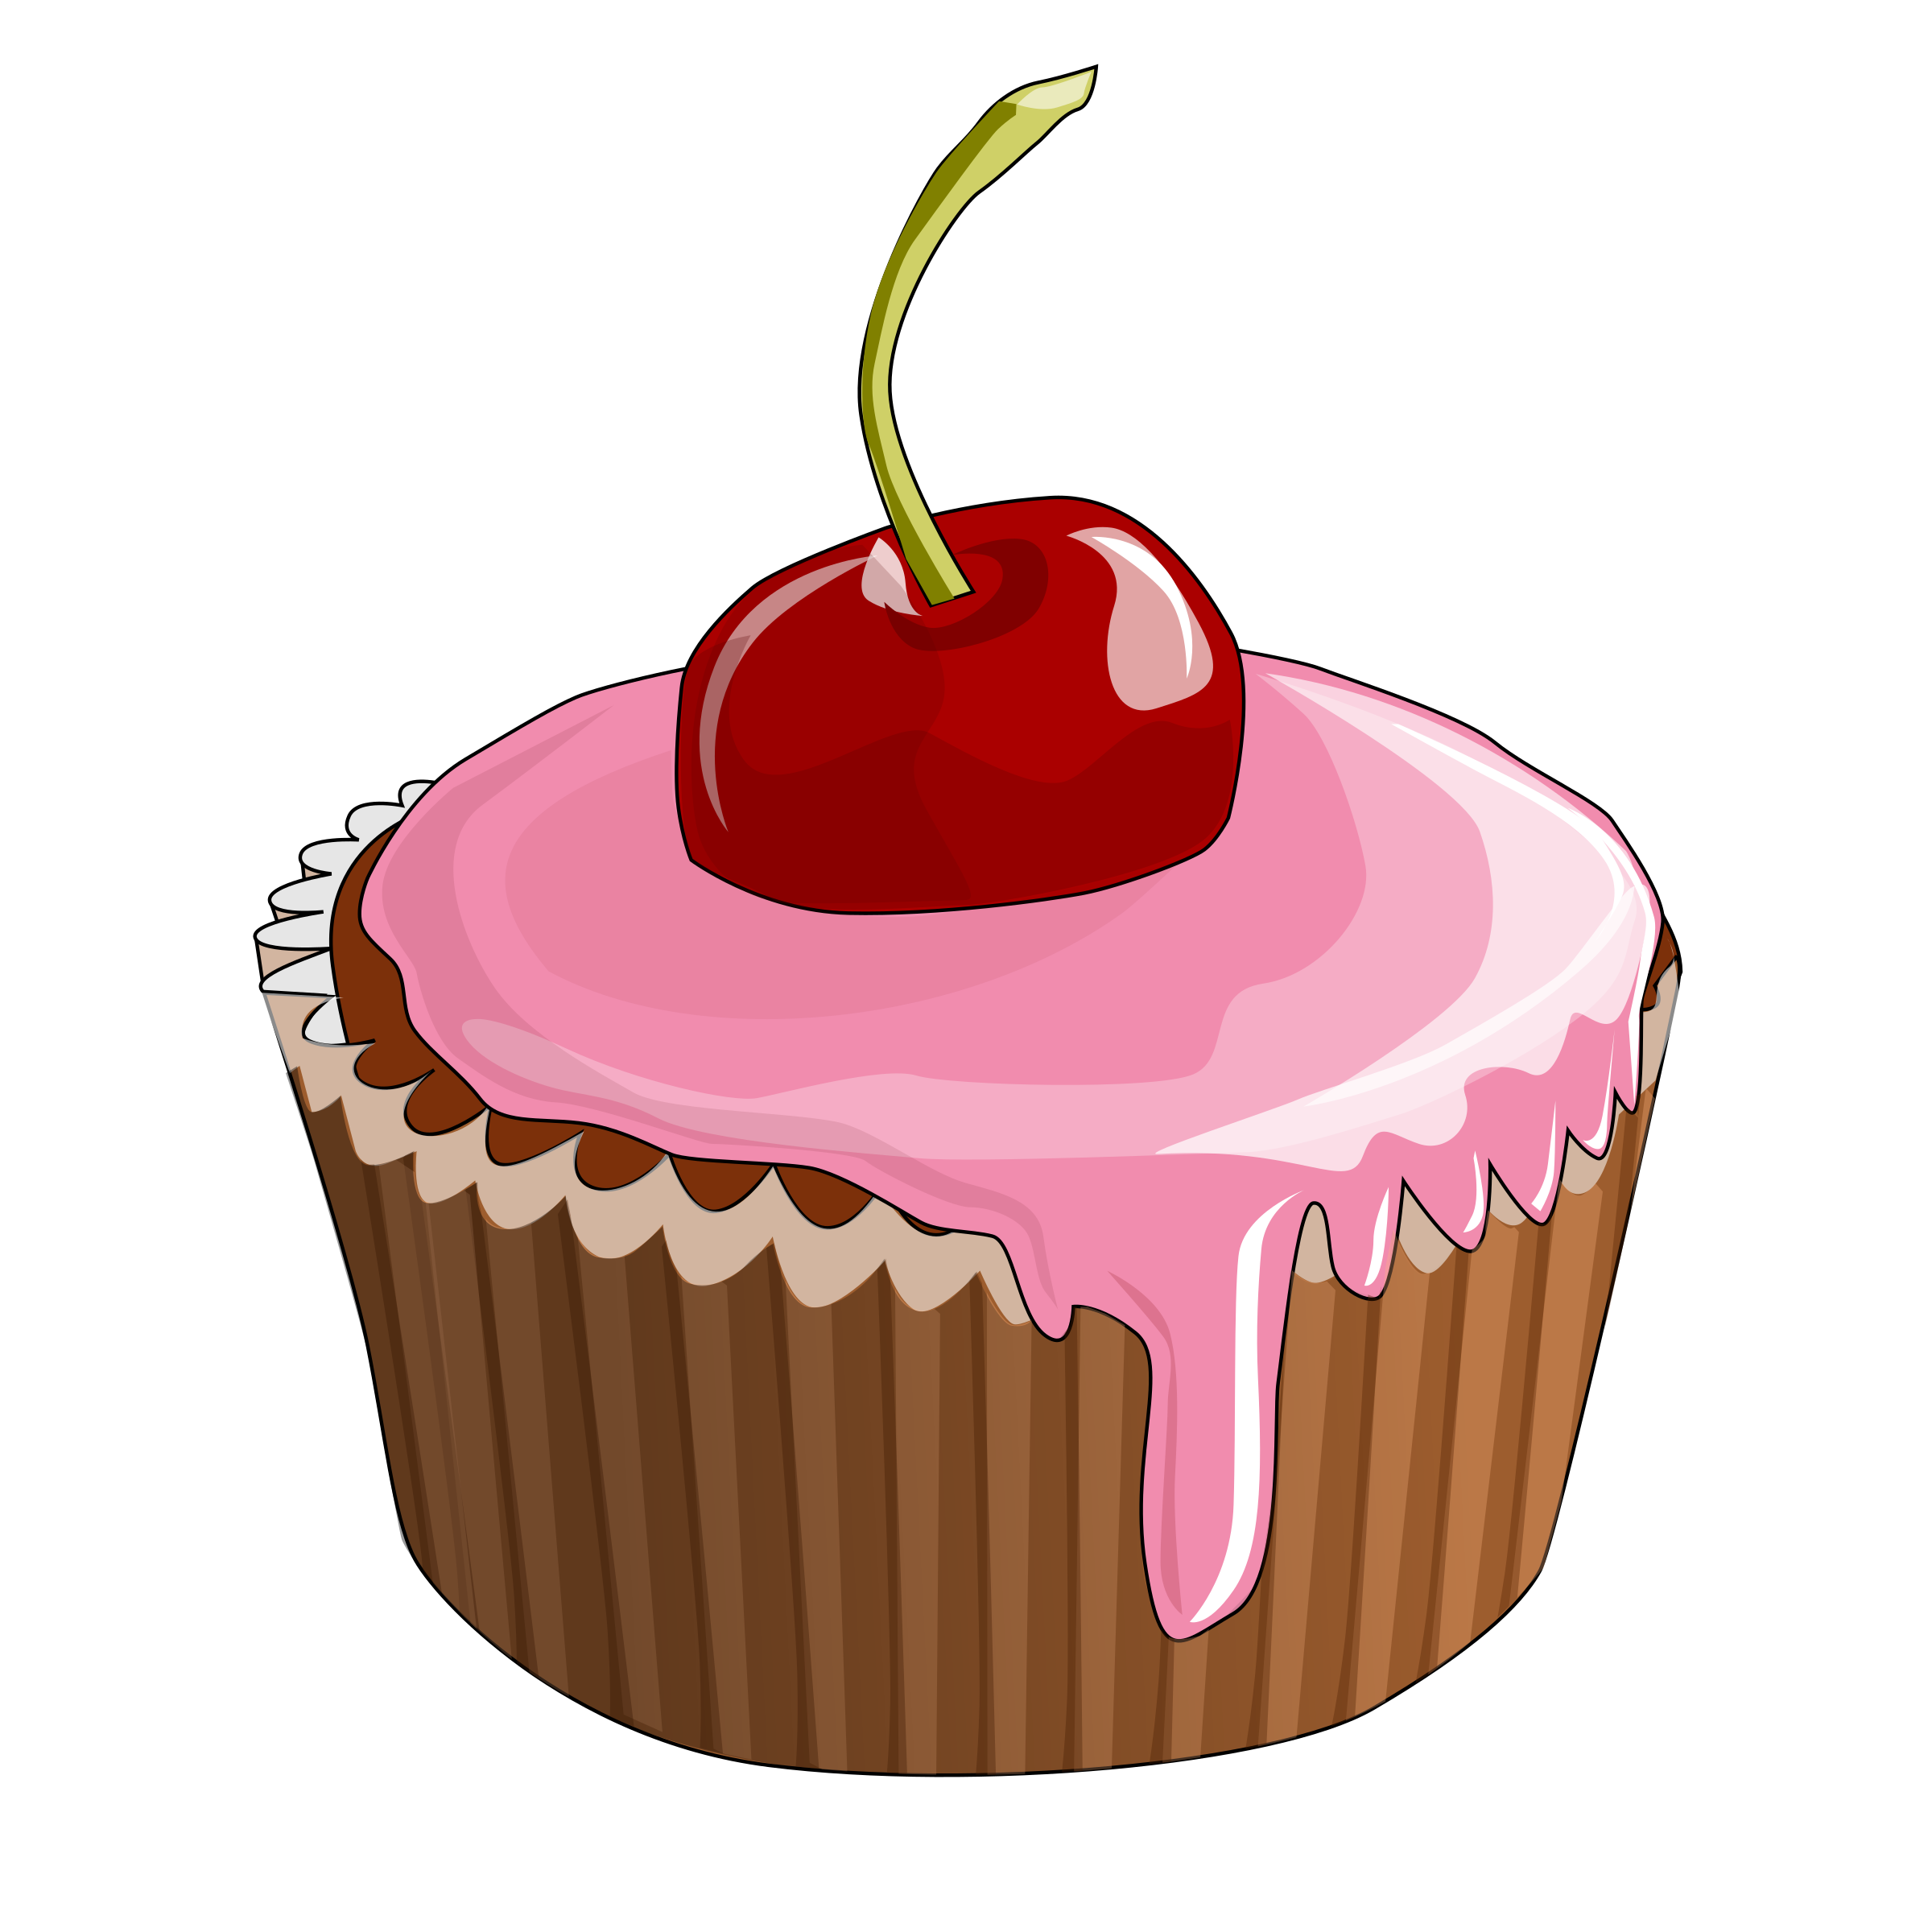 cherry cupcake vector clipart image free stock photo public rh goodfreephotos com cupcake vector freepik cupcake vector free